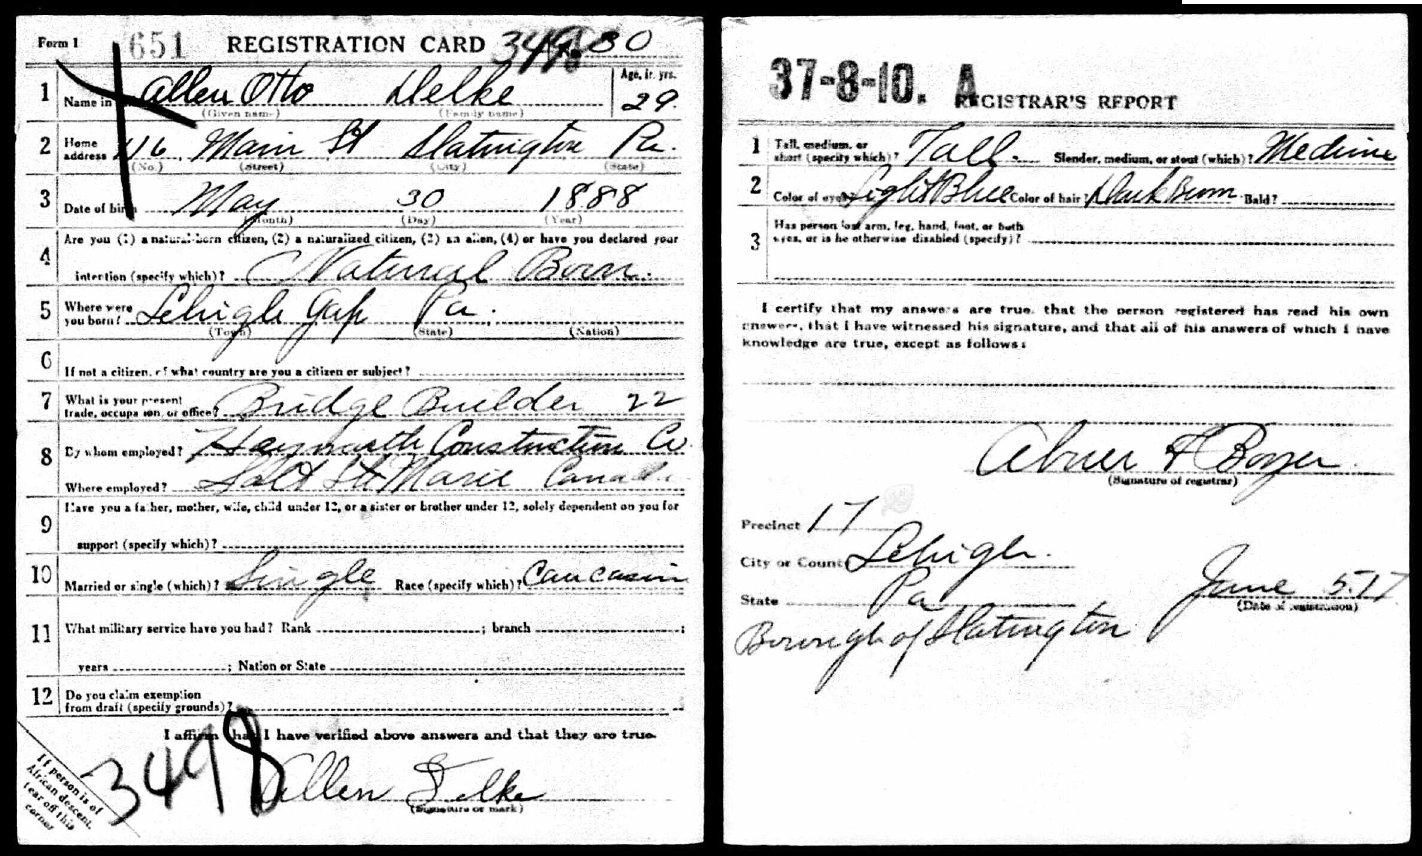 Allen Delke KIA - Company I 314th Infantry - Draft Registration Card